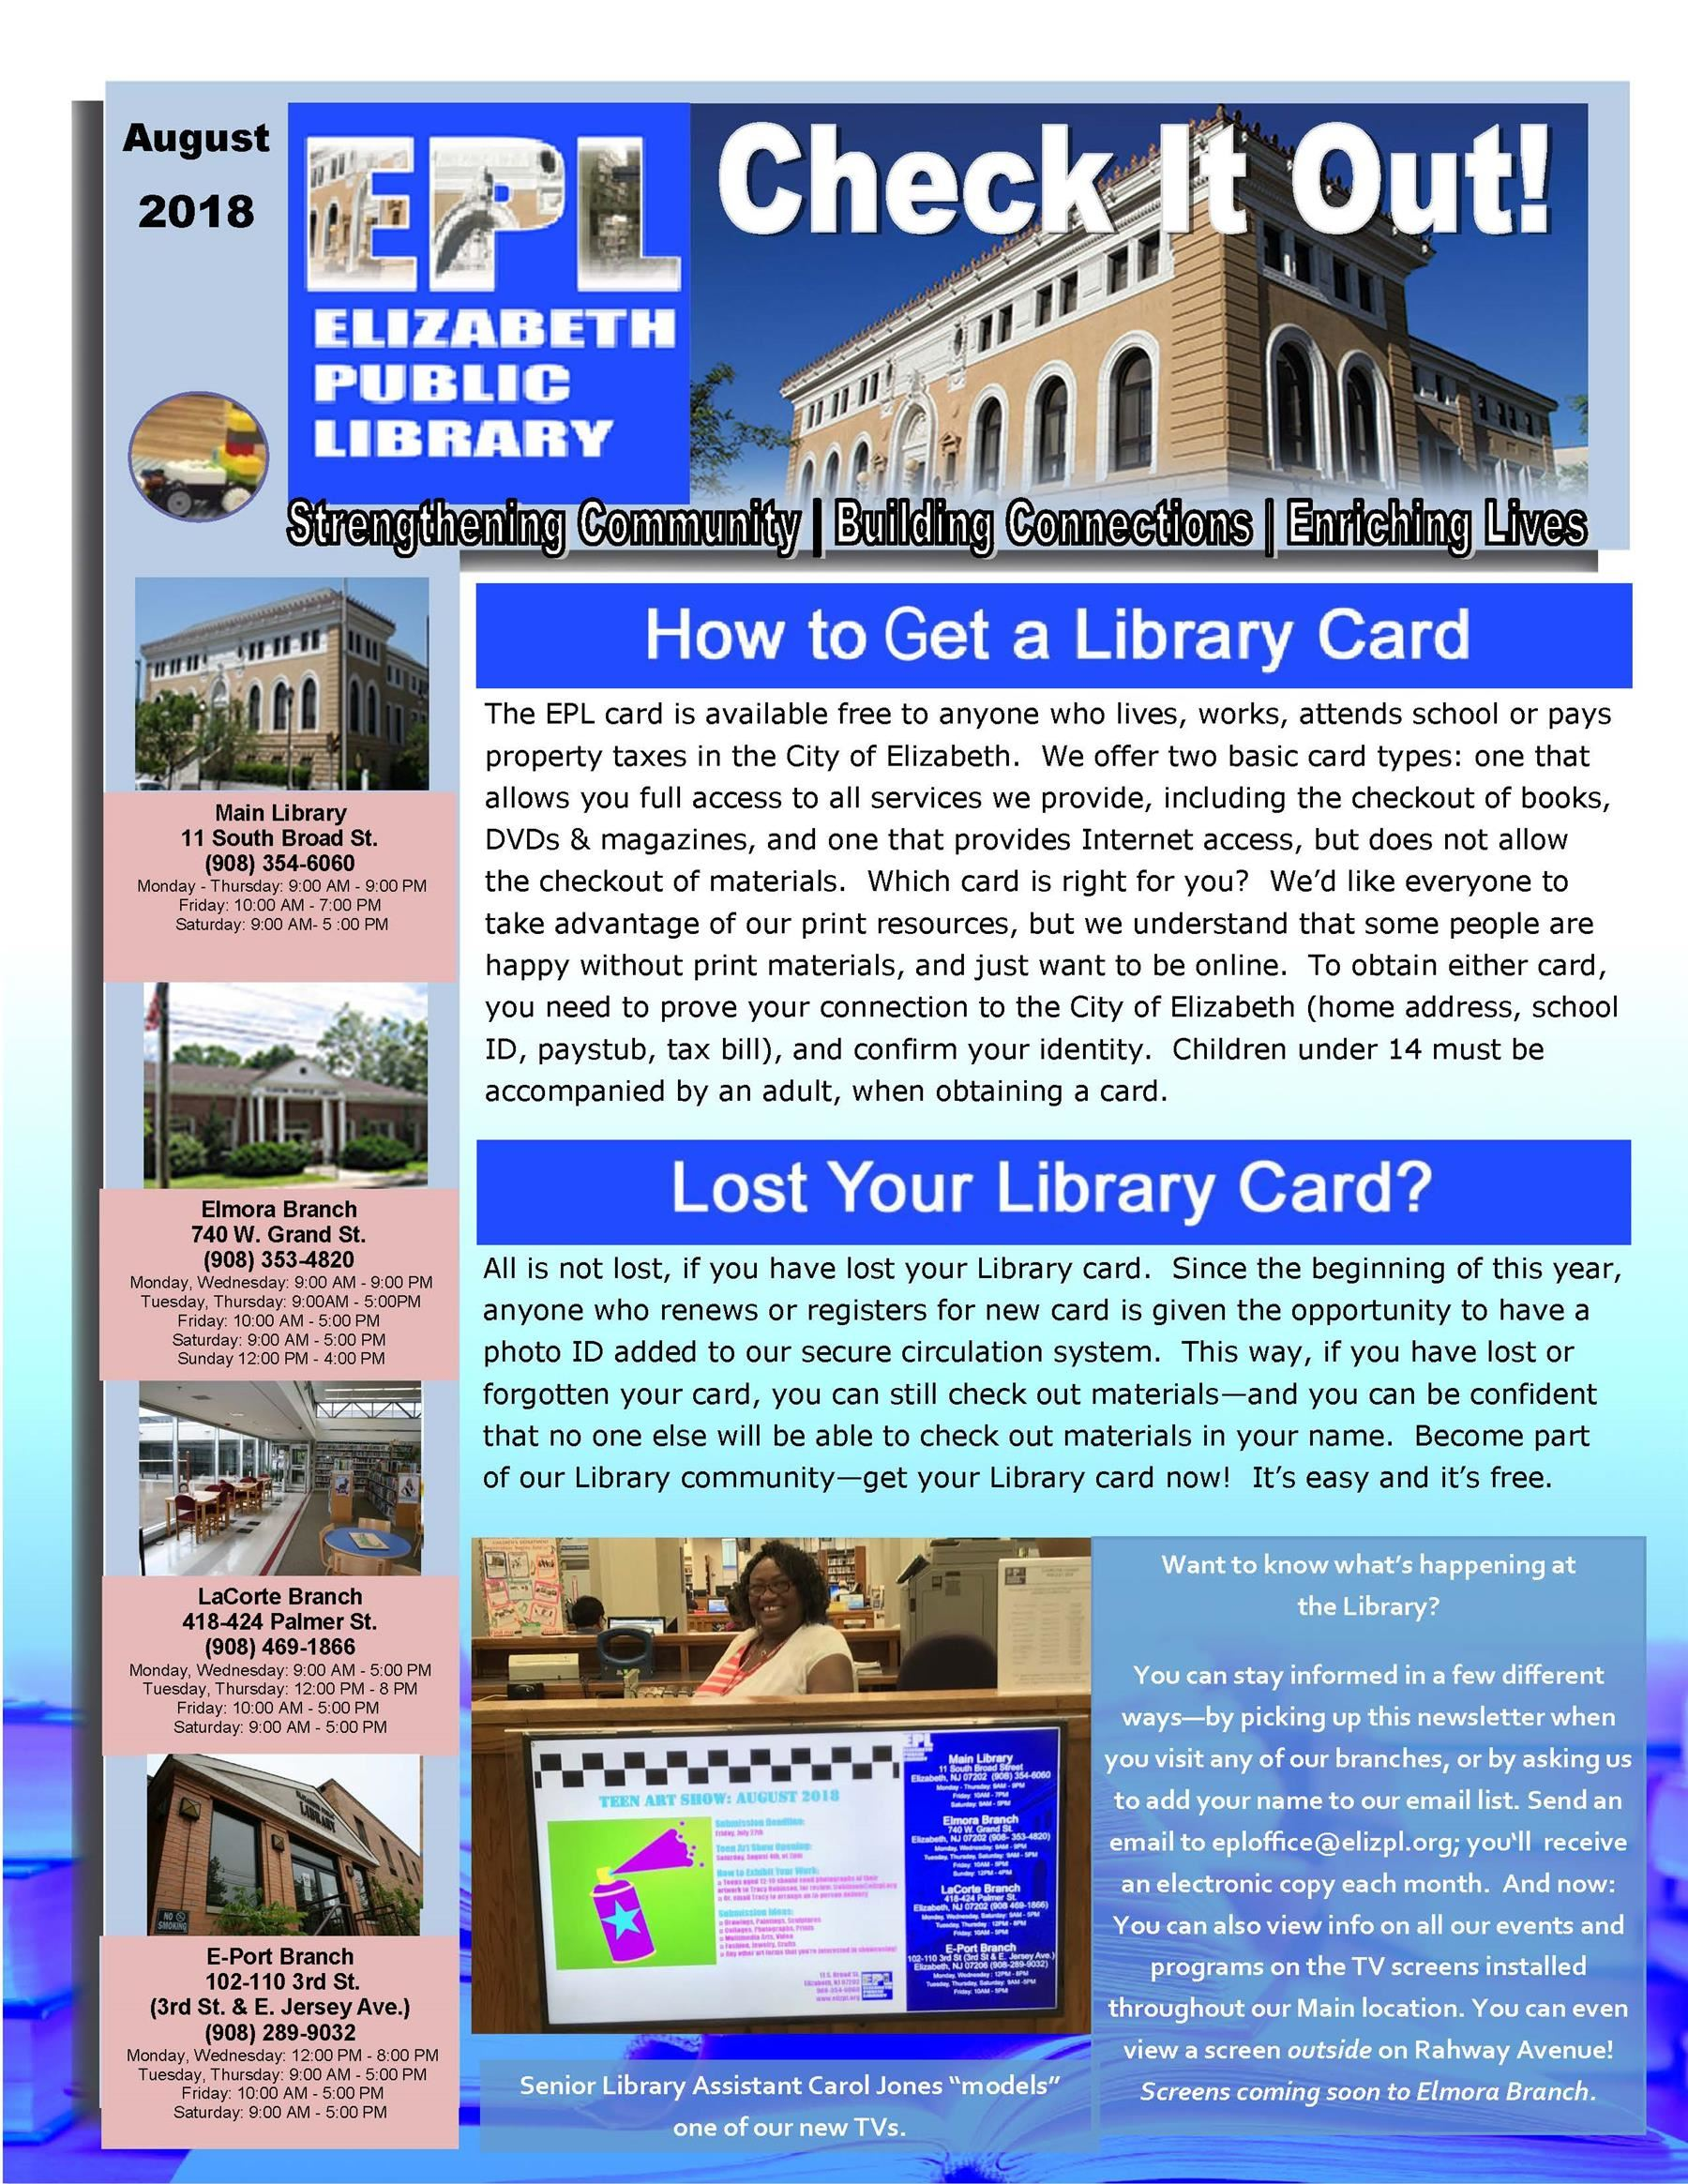 Summer Continues at Elizabeth Public Library